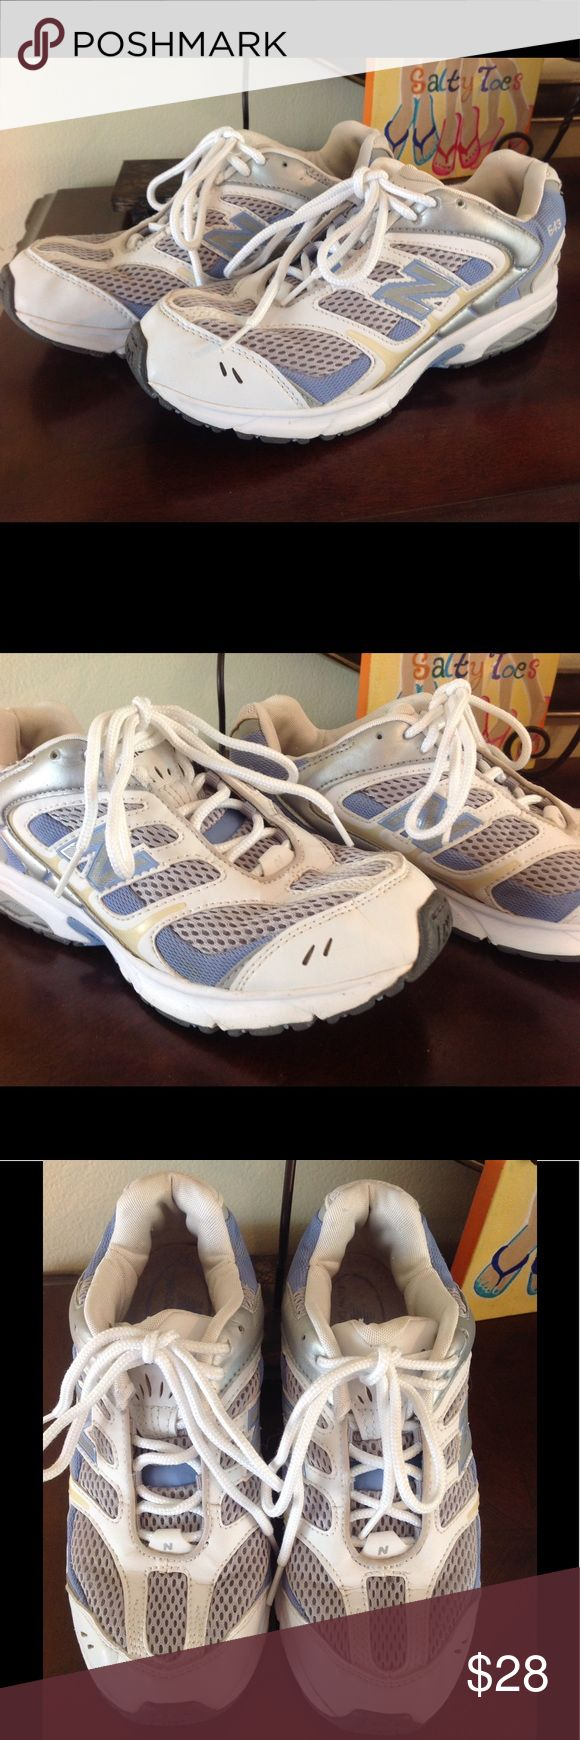 """NEW BALANCE 643 Abzorb KJ643SPG MEN 6 1/2 This is a nice preowned pair of New Balance 643 Abzorb men's athletic shoes in a size 6 1/2.  The outside of the shoe measures 10 1/2"""" and across the top is 5 1/2"""". Could possibly fit woman size 7 1/2"""" see measurements for exact fit. Colors are white blue, grey and cream trim. See photos for more condition details. Show slight signs of wear, look good. Questions please ask. New Balance Shoes Athletic Shoes"""